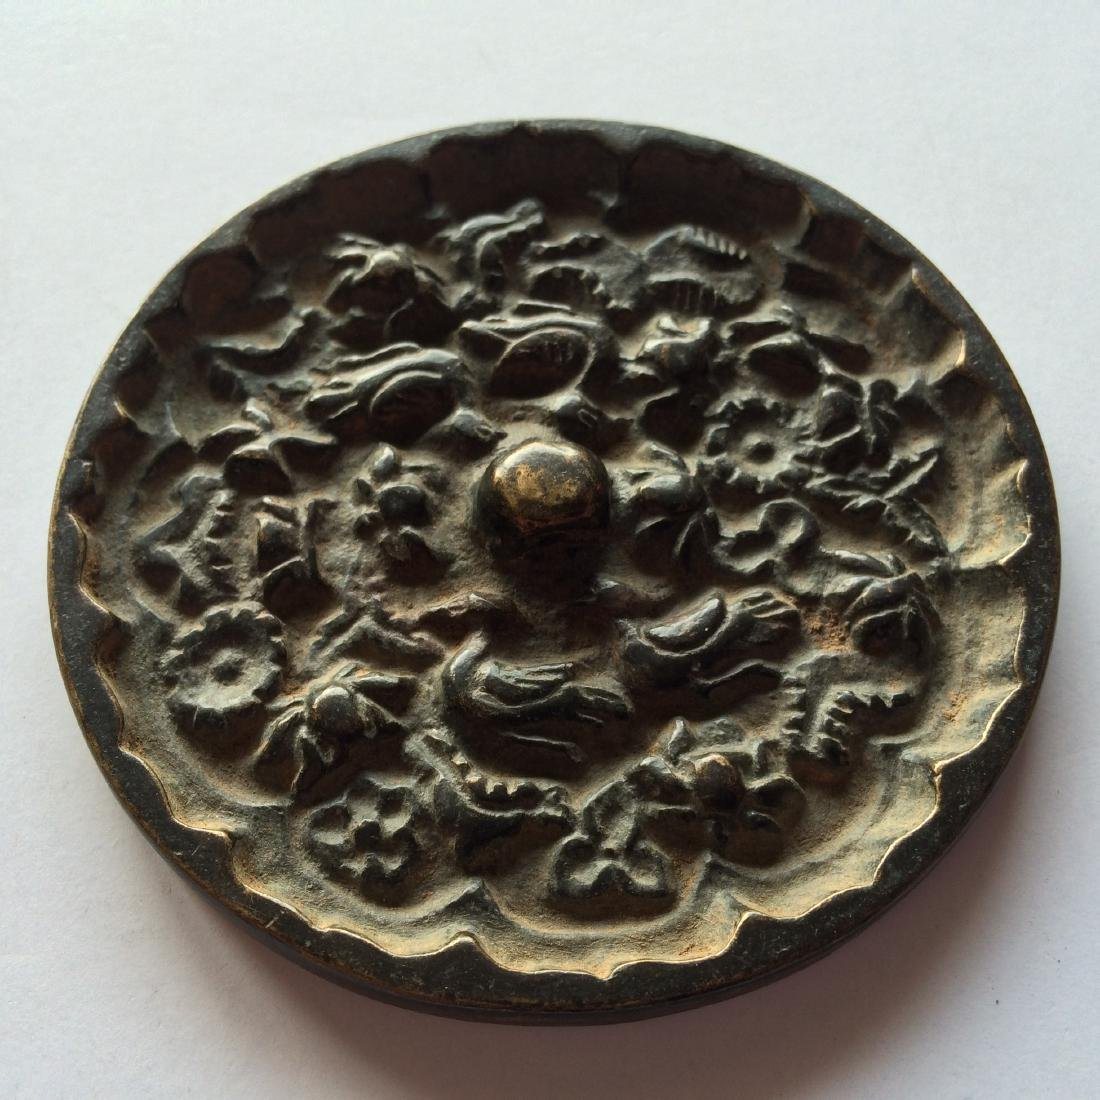 Antique Chinese Bronze Mirror Engraved with Birds - 2